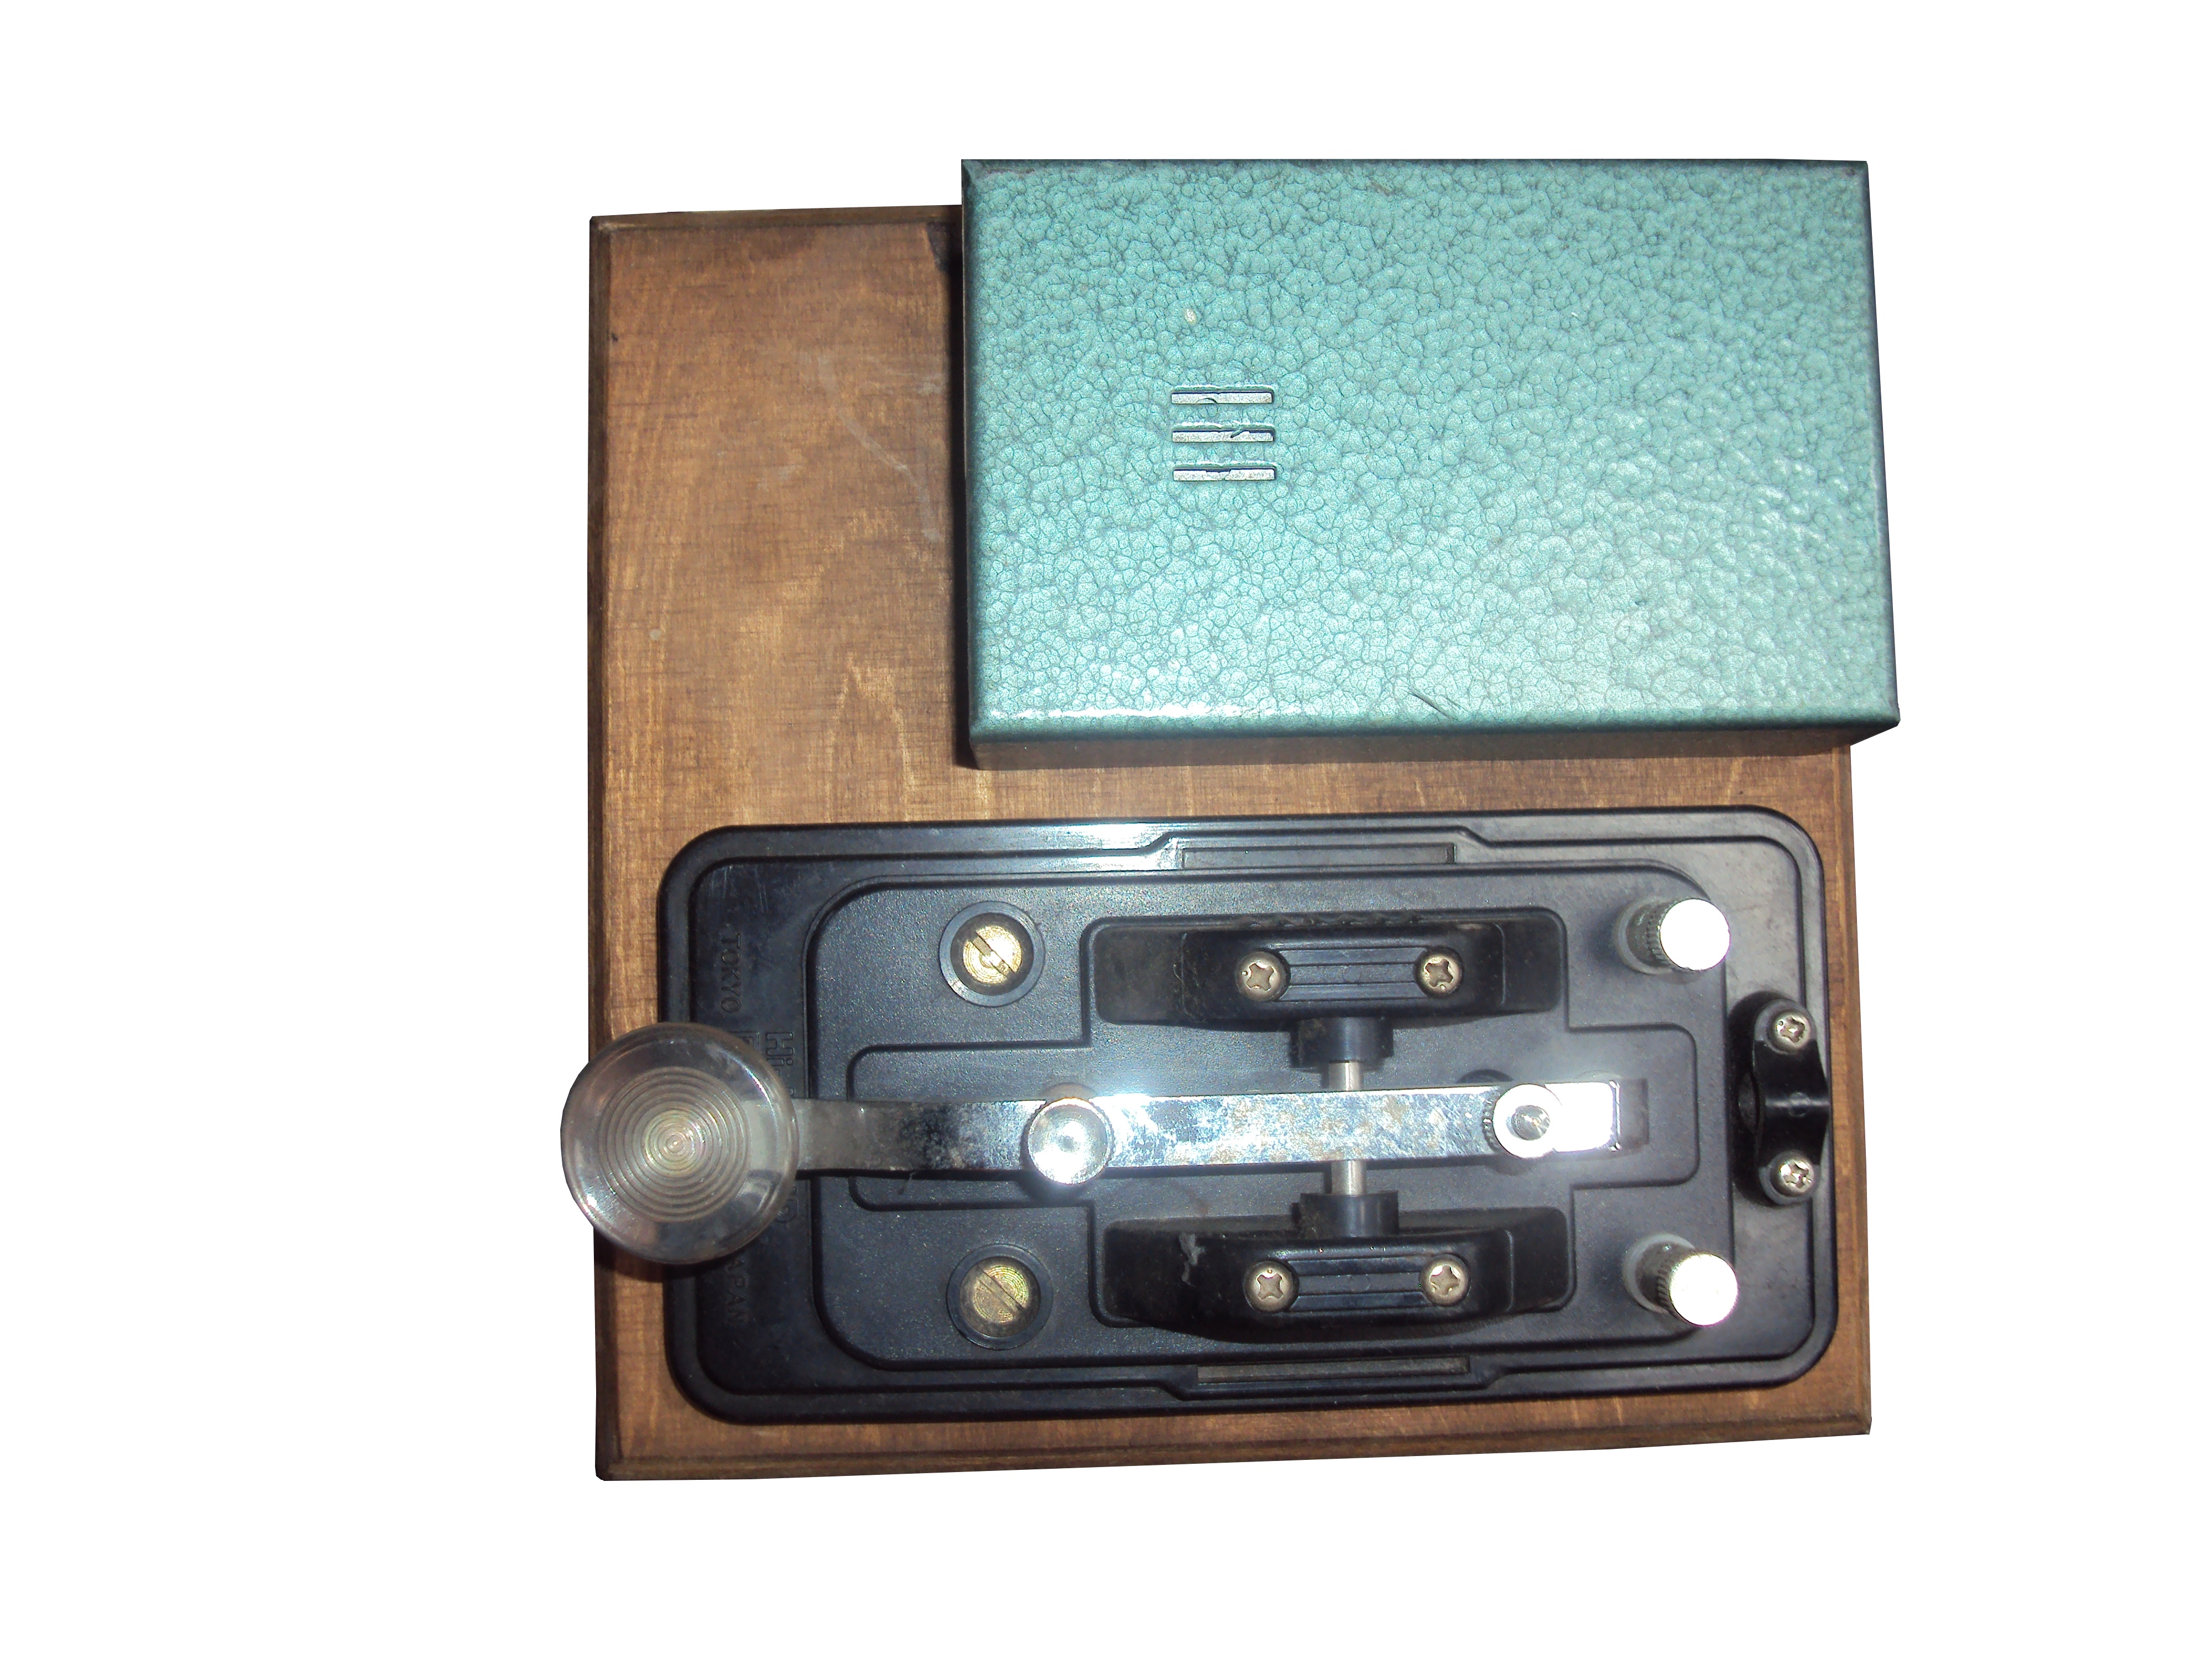 Lot 50 - Morse Code Machine - British Army - Used - Genuine Issue